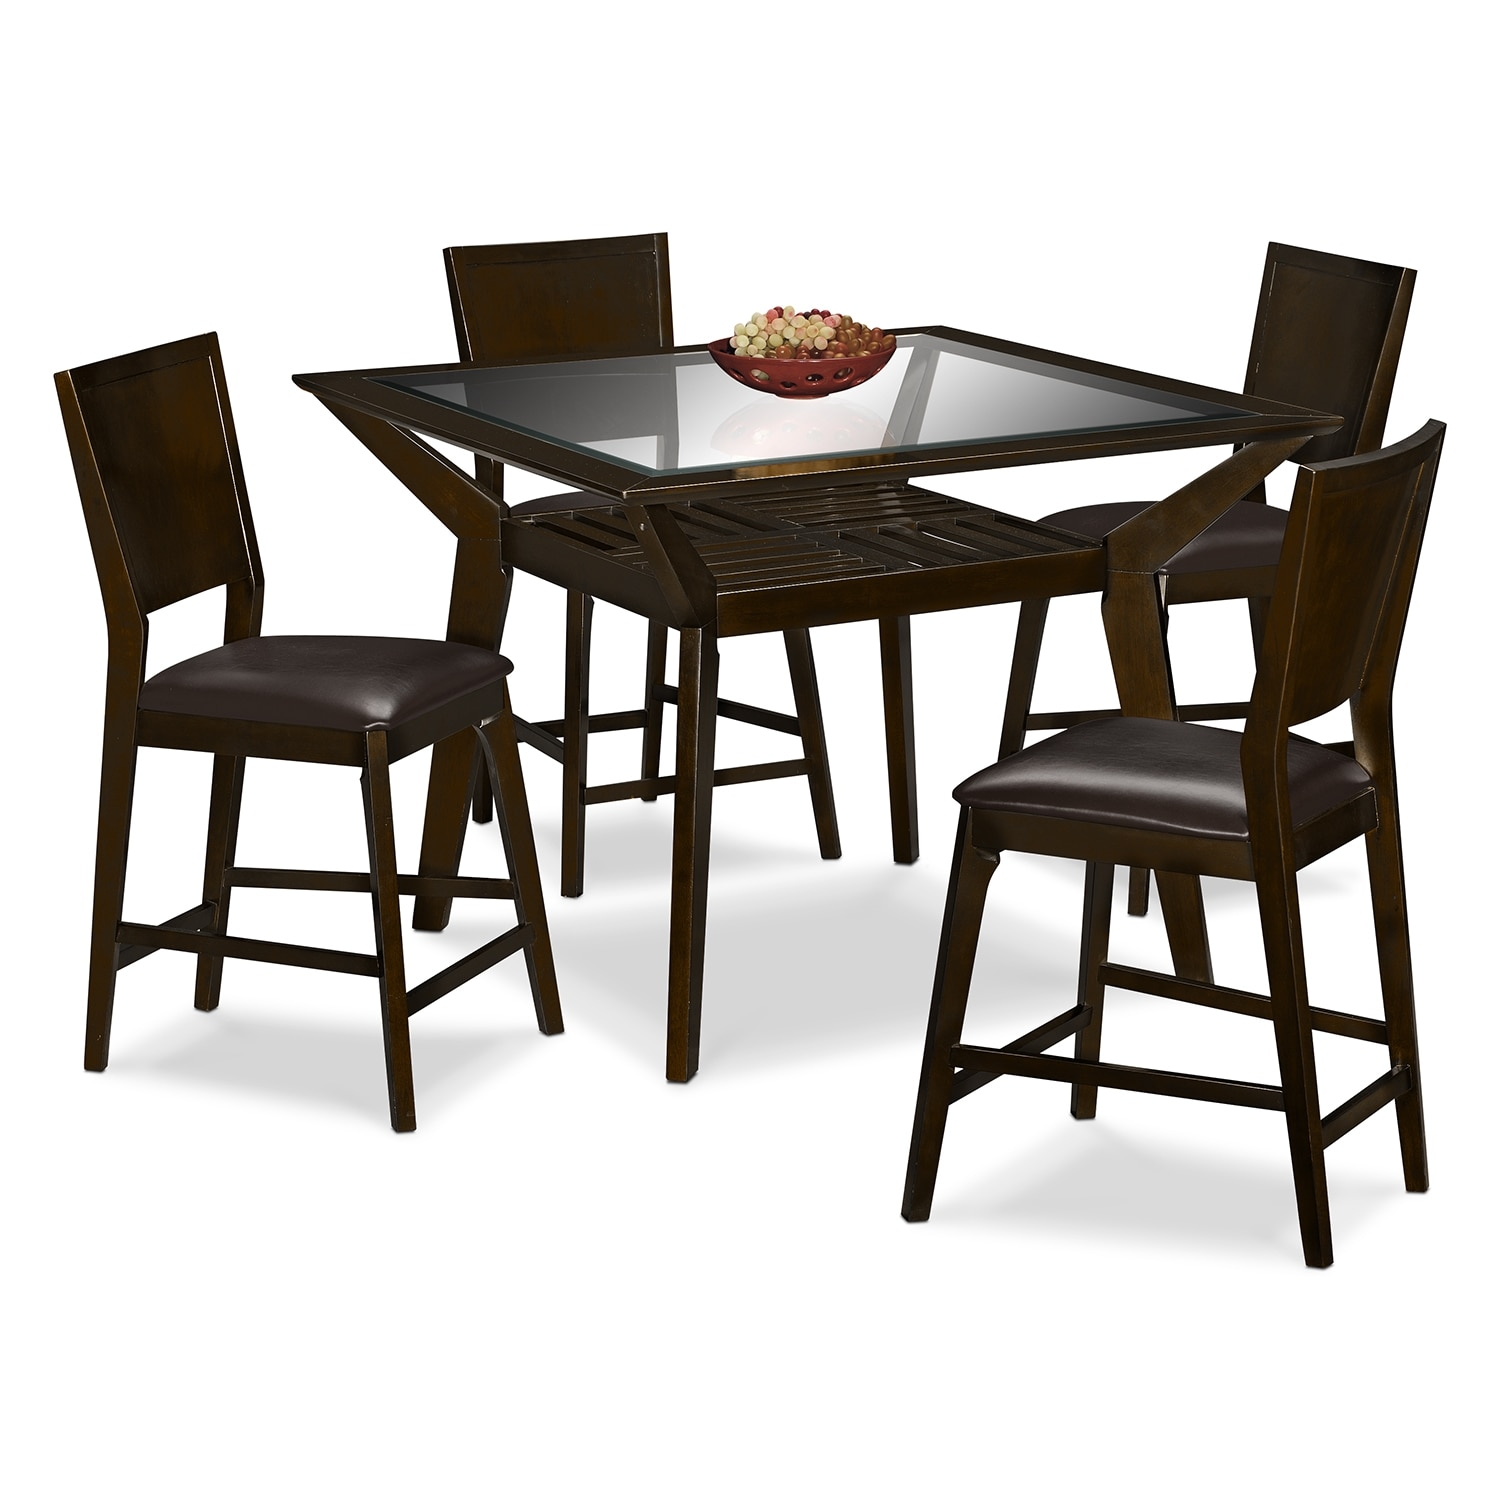 Mystic counter height table and 4 chairs merlot and for Dining room table height